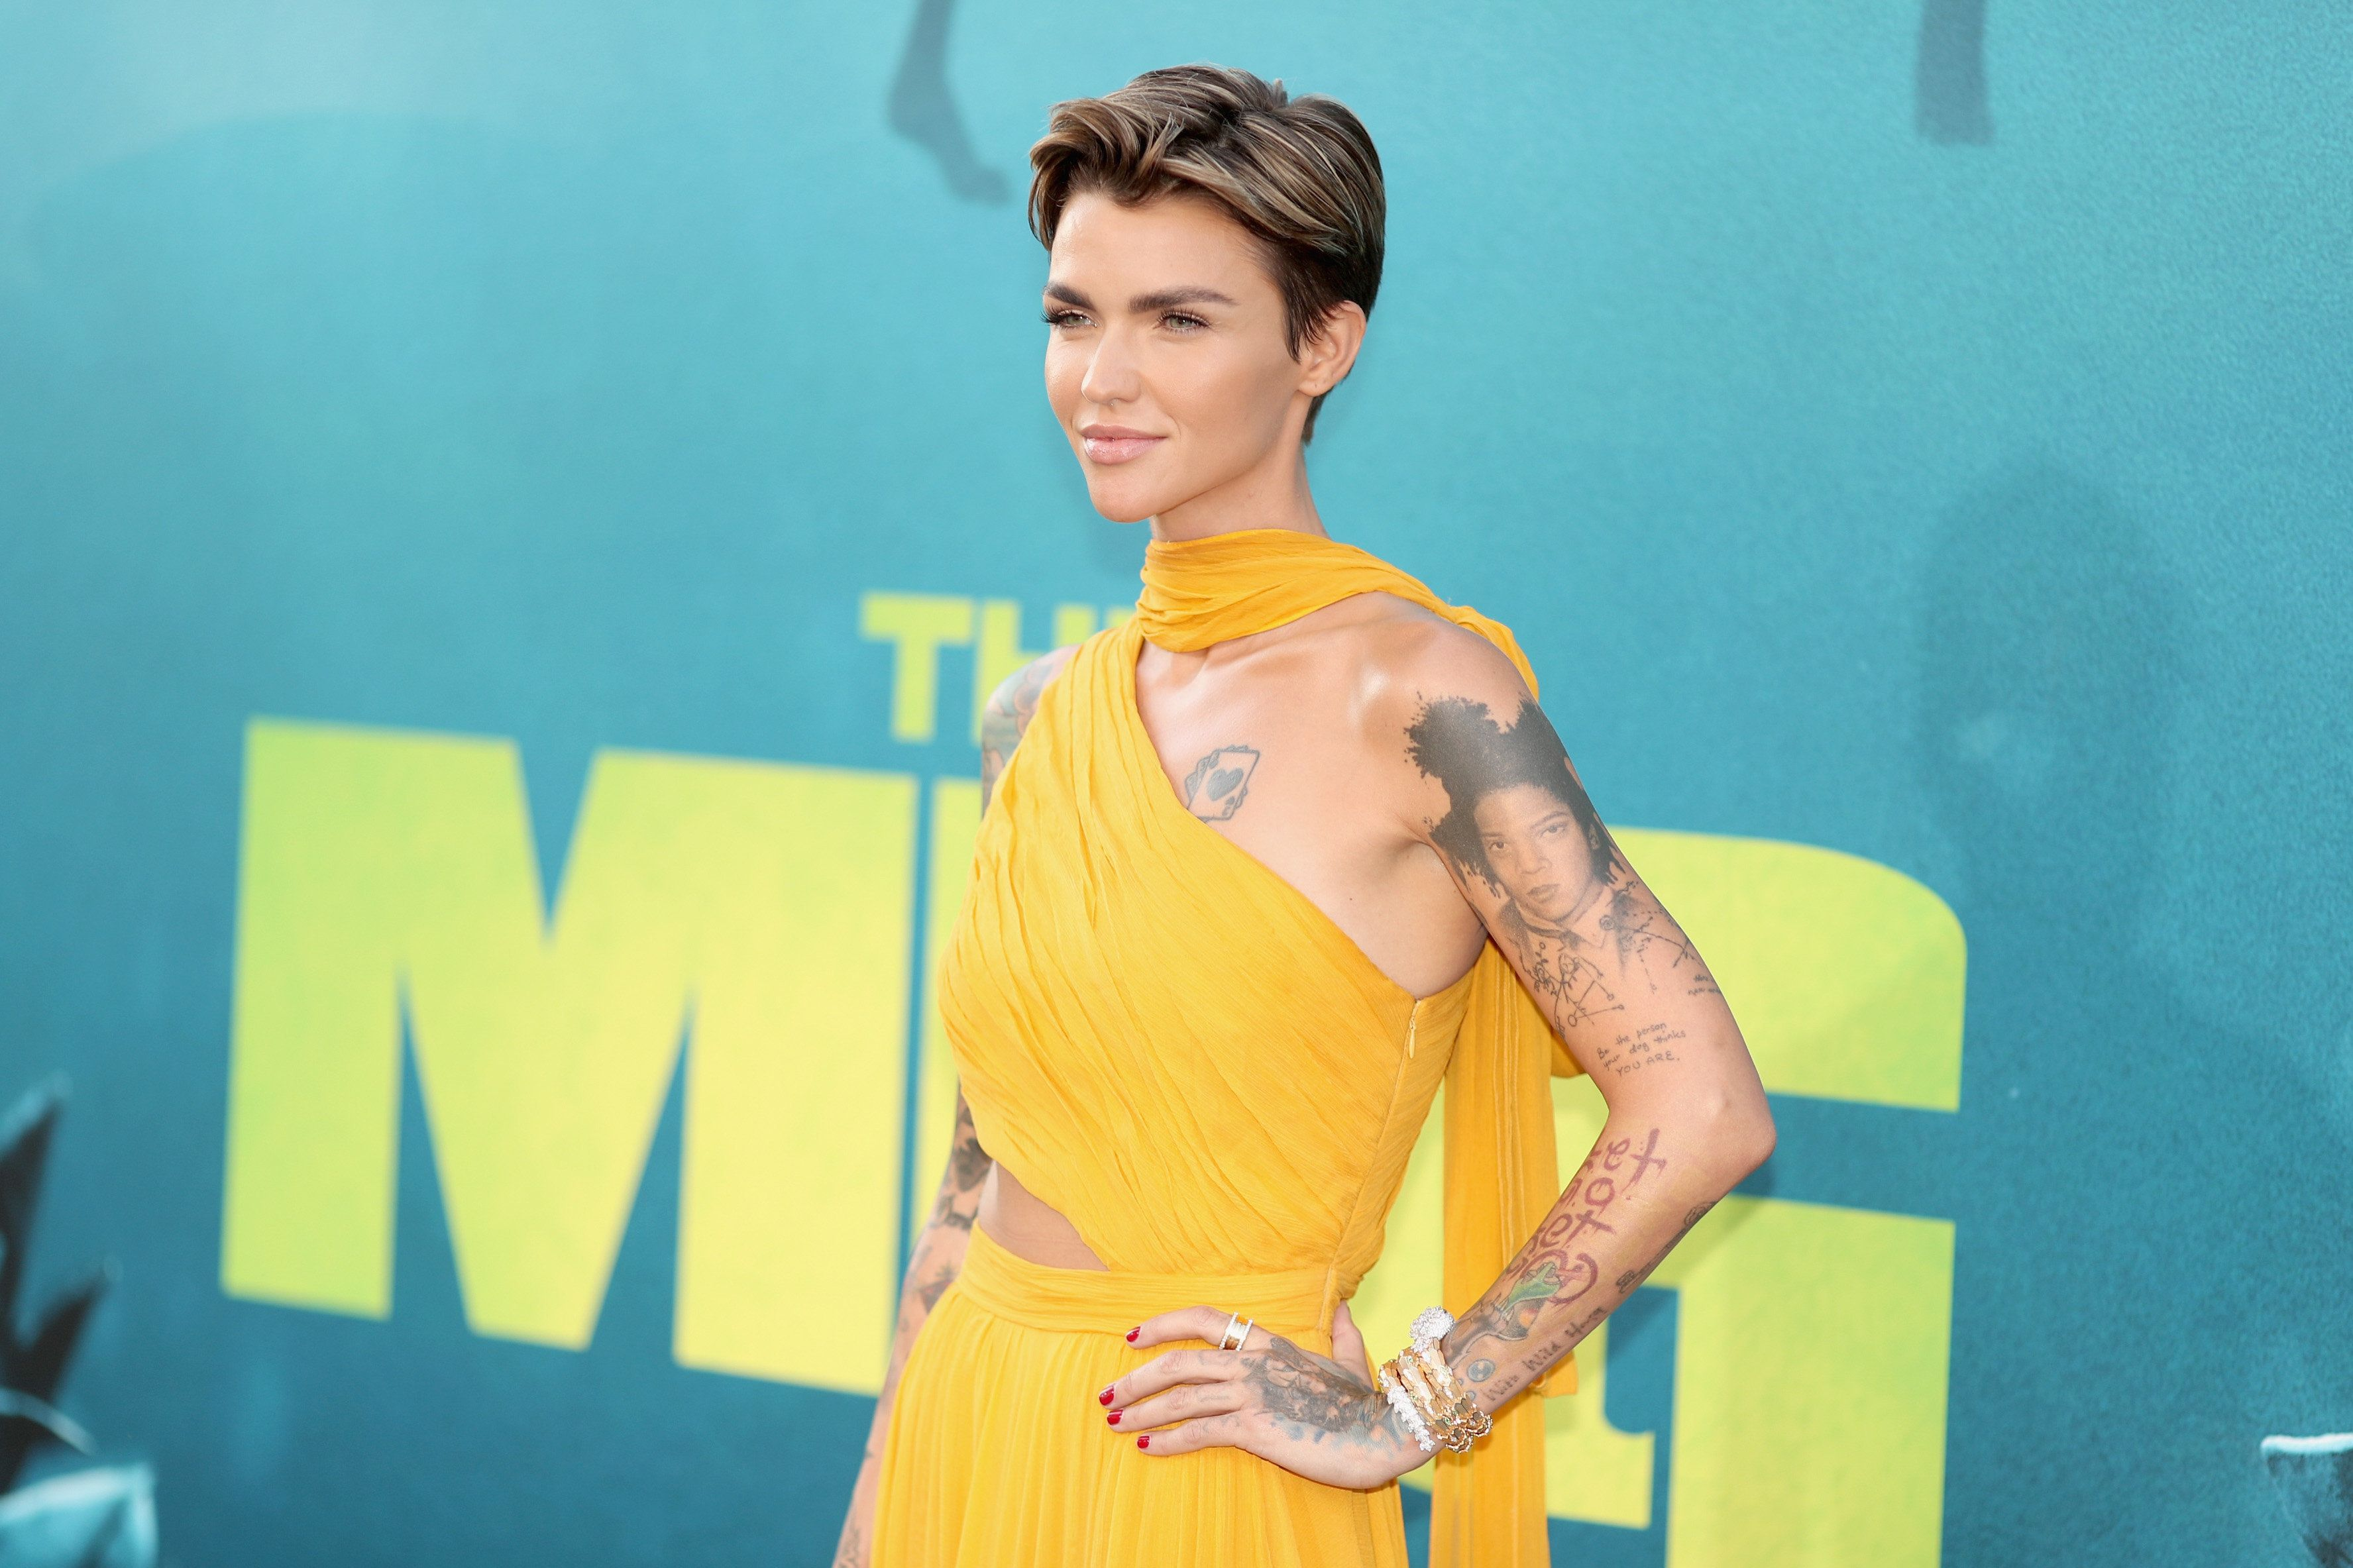 Ruby Rose Will Play Batwoman And Make History As Lesbian